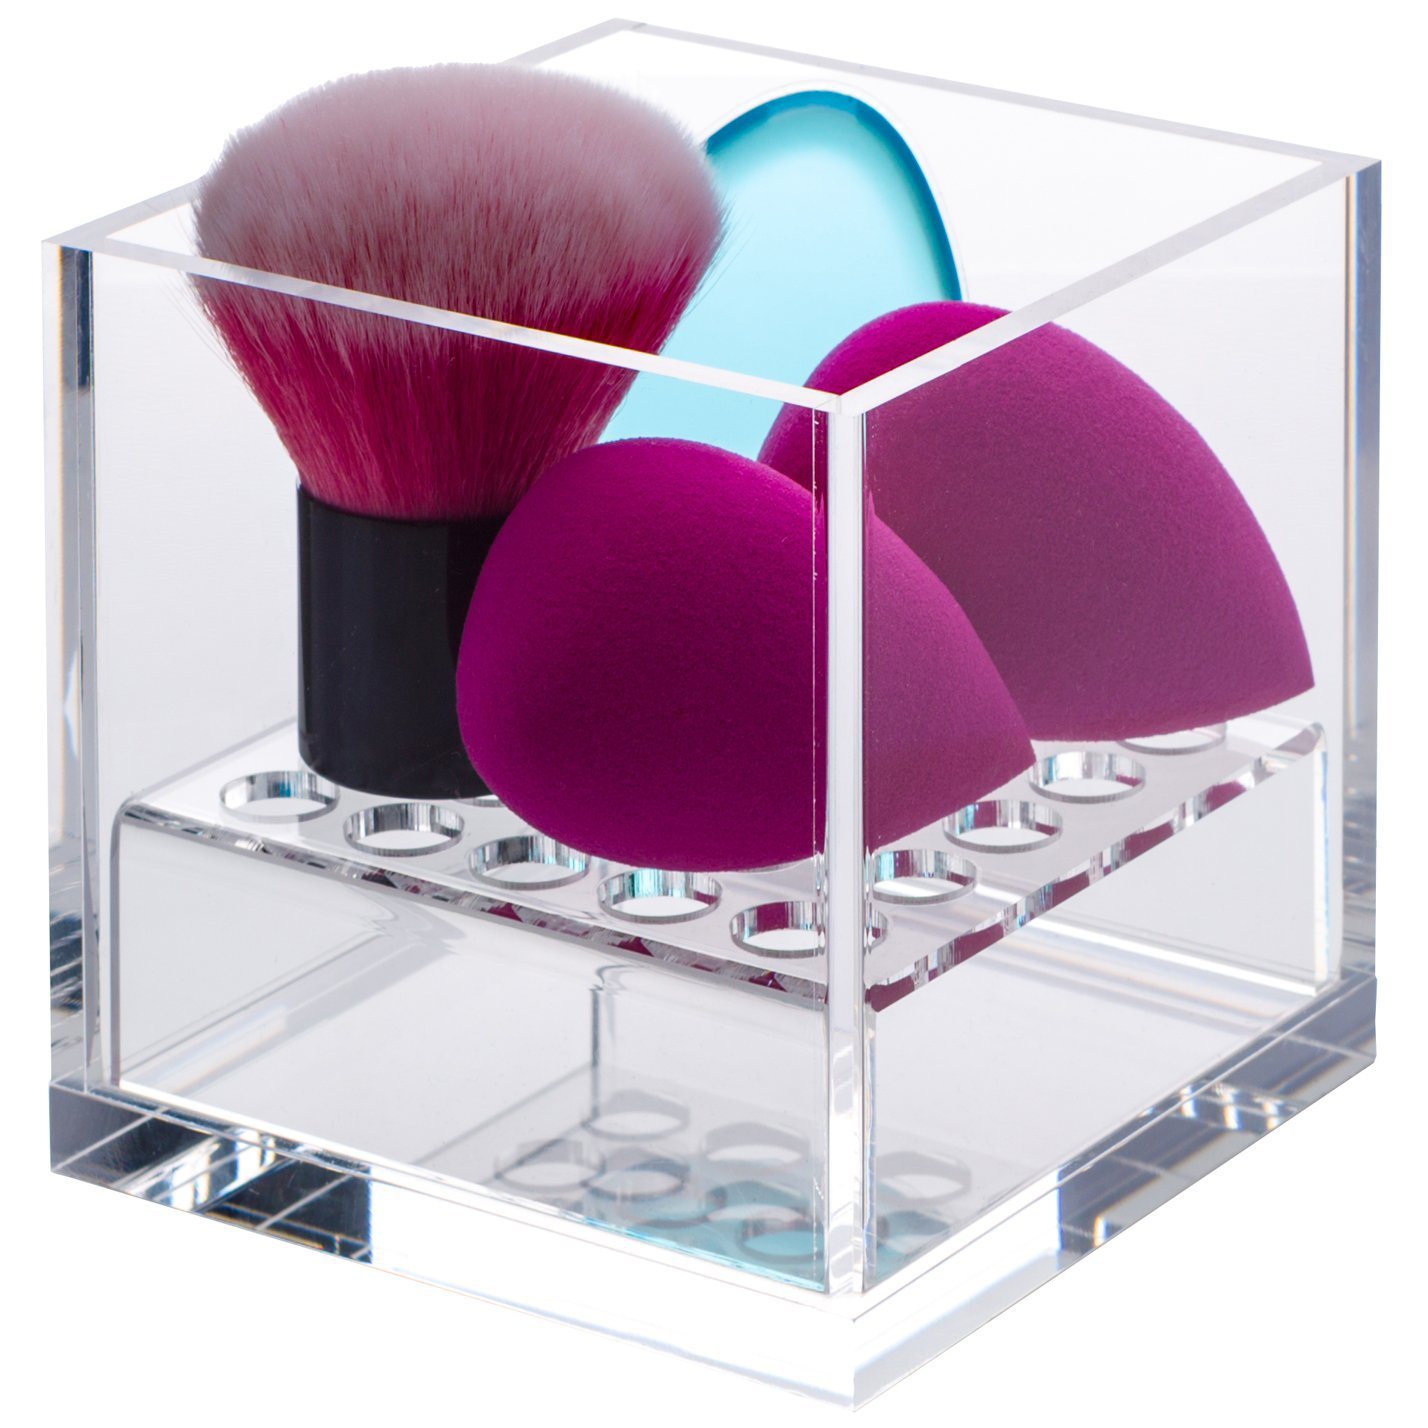 Acrylic Cube Cosmetic Organizer For Beauty Blender And Sponge